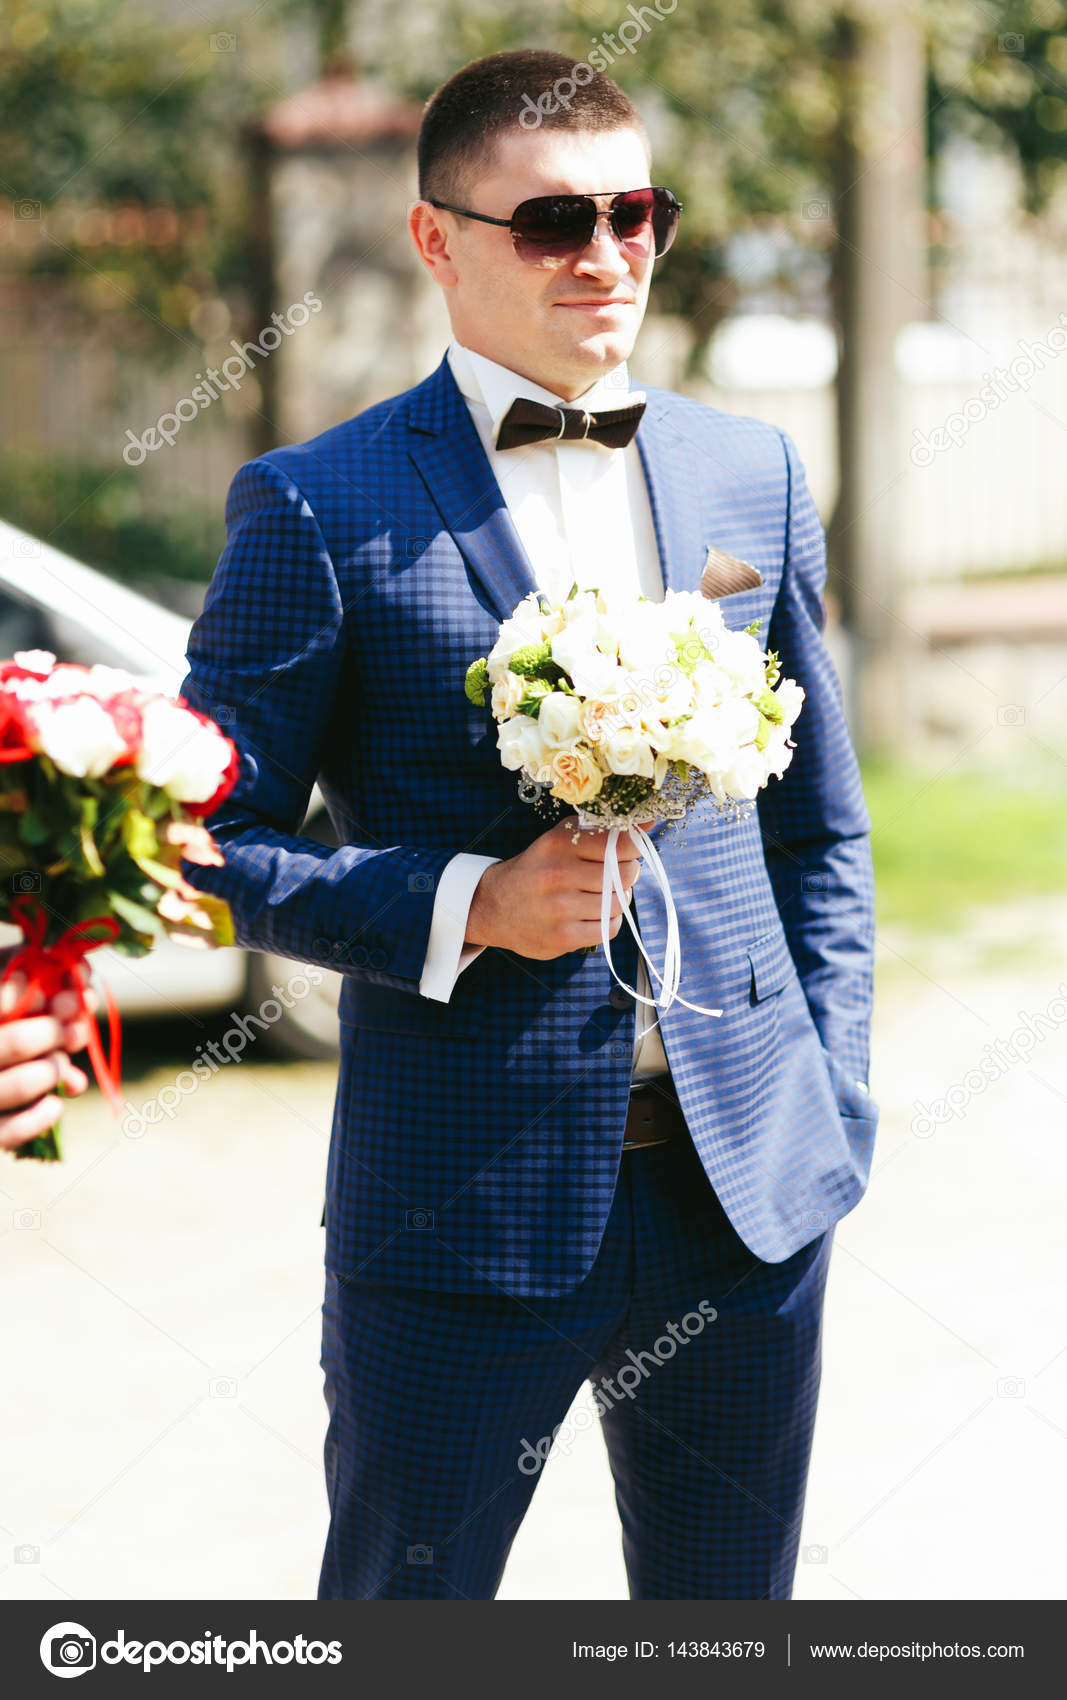 Stylish groom in blue suit — Stock Photo © olexiysyrotkin #143843679